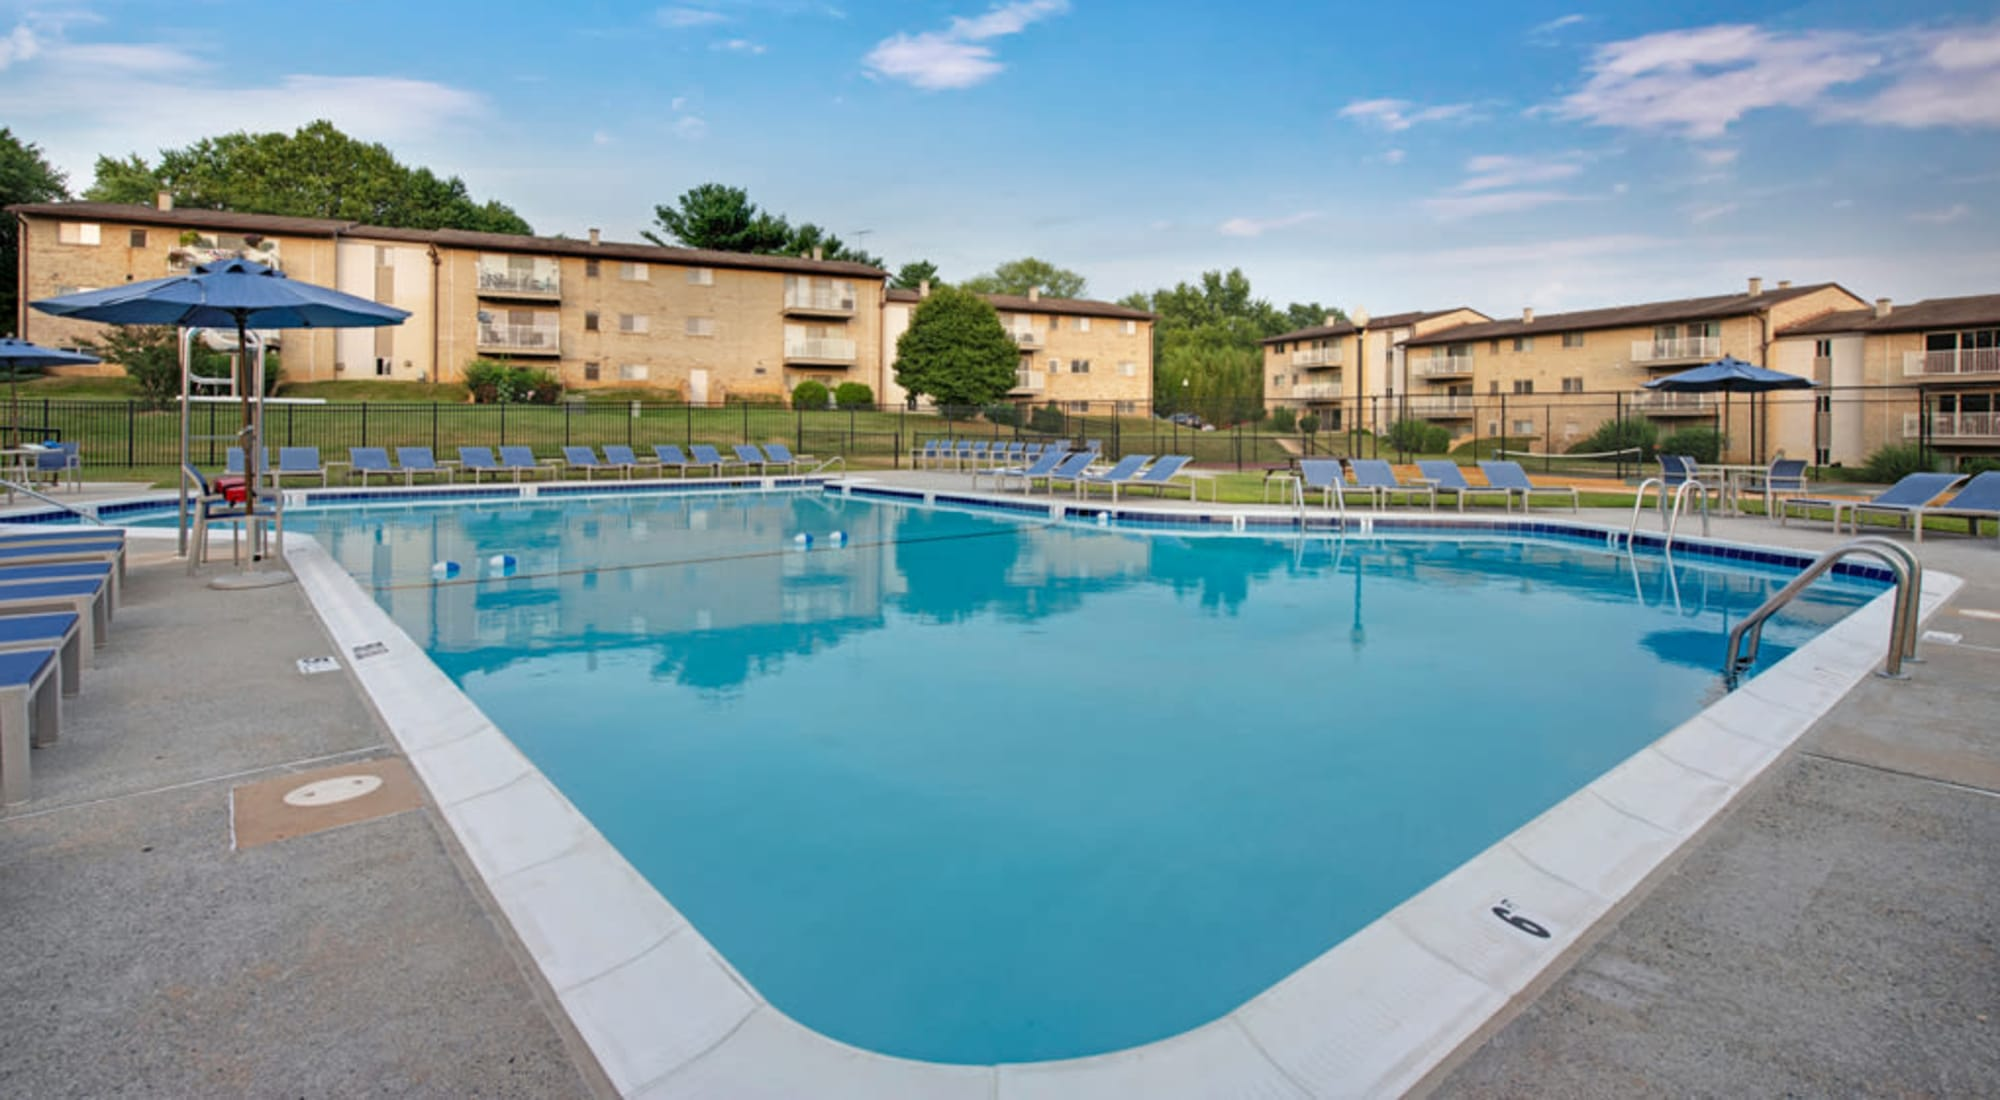 Amenities at Country Village Apartments in Bel Air, Maryland